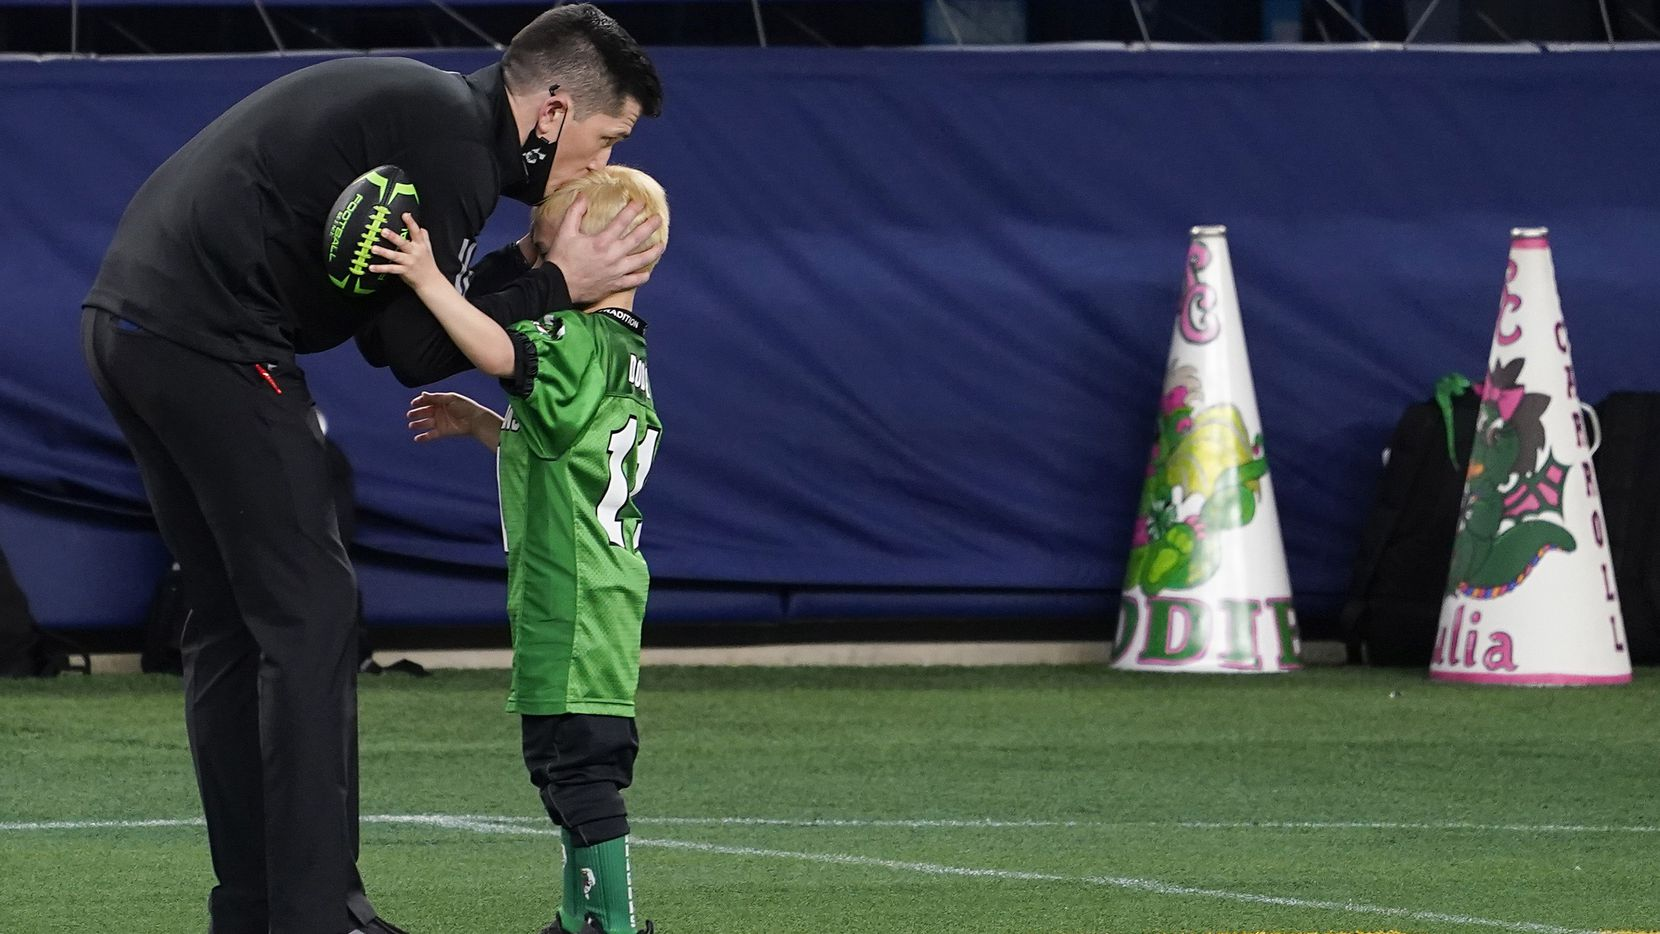 Southlake Carroll head coach Riley Dodge kisses his son Tate, 5, on the sidelines before the Class 6A Division I state football championship game against Austin Westlake, coached by his father Todd Dodge, at AT&T Stadium on Saturday, Jan. 16, 2021, in Arlington, Texas.